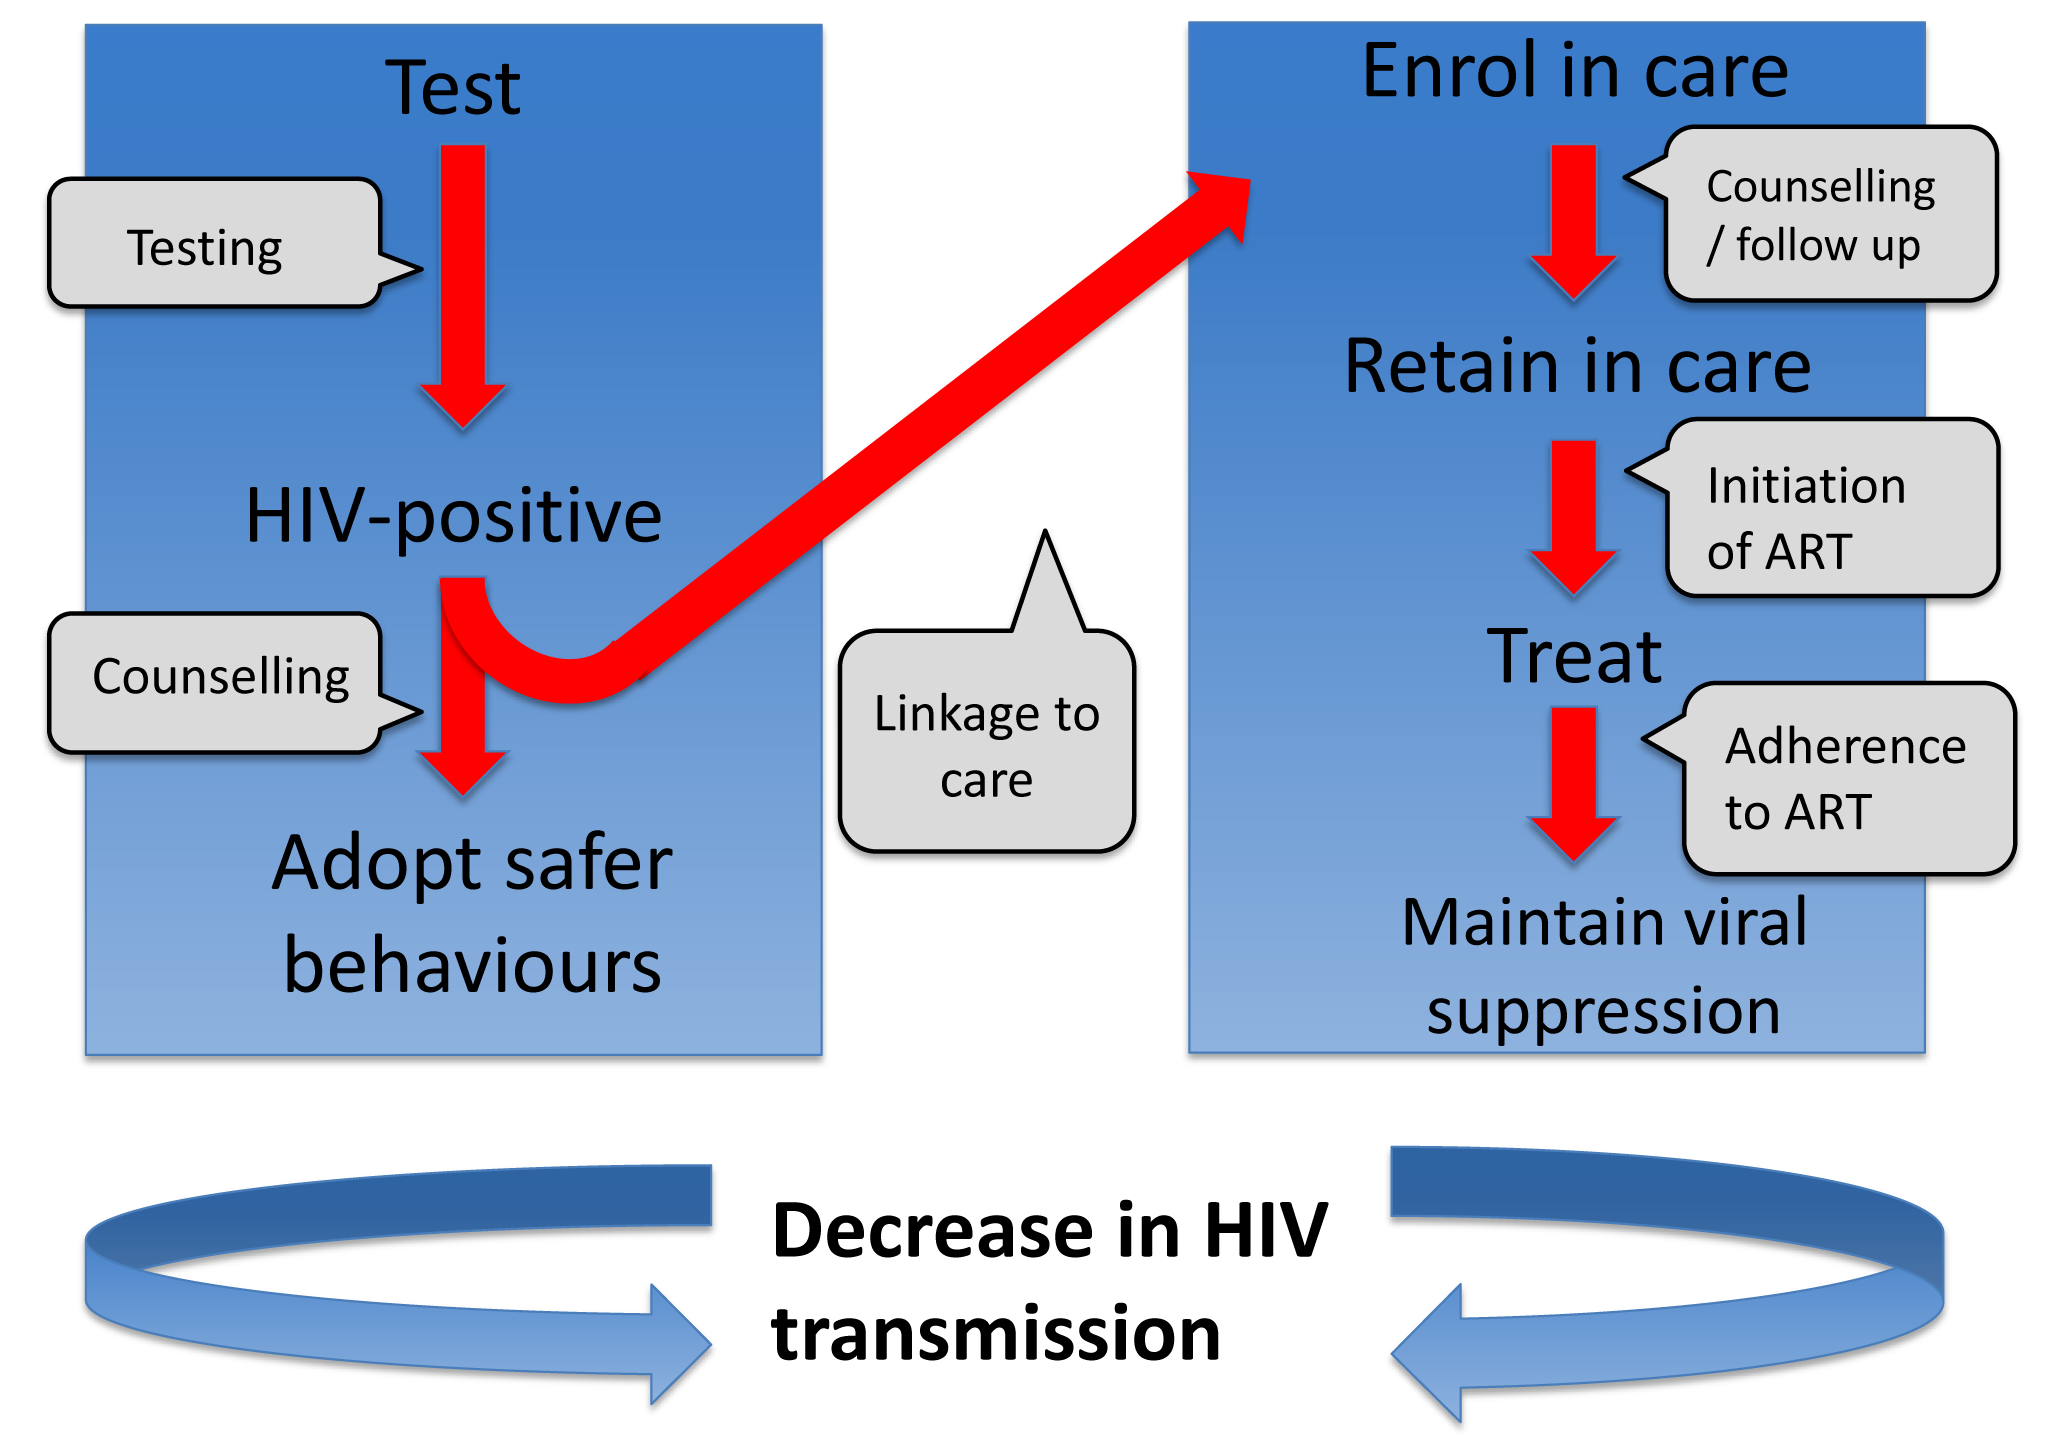 Series of steps required in order to reduce onward transmission from someone infected with HIV.